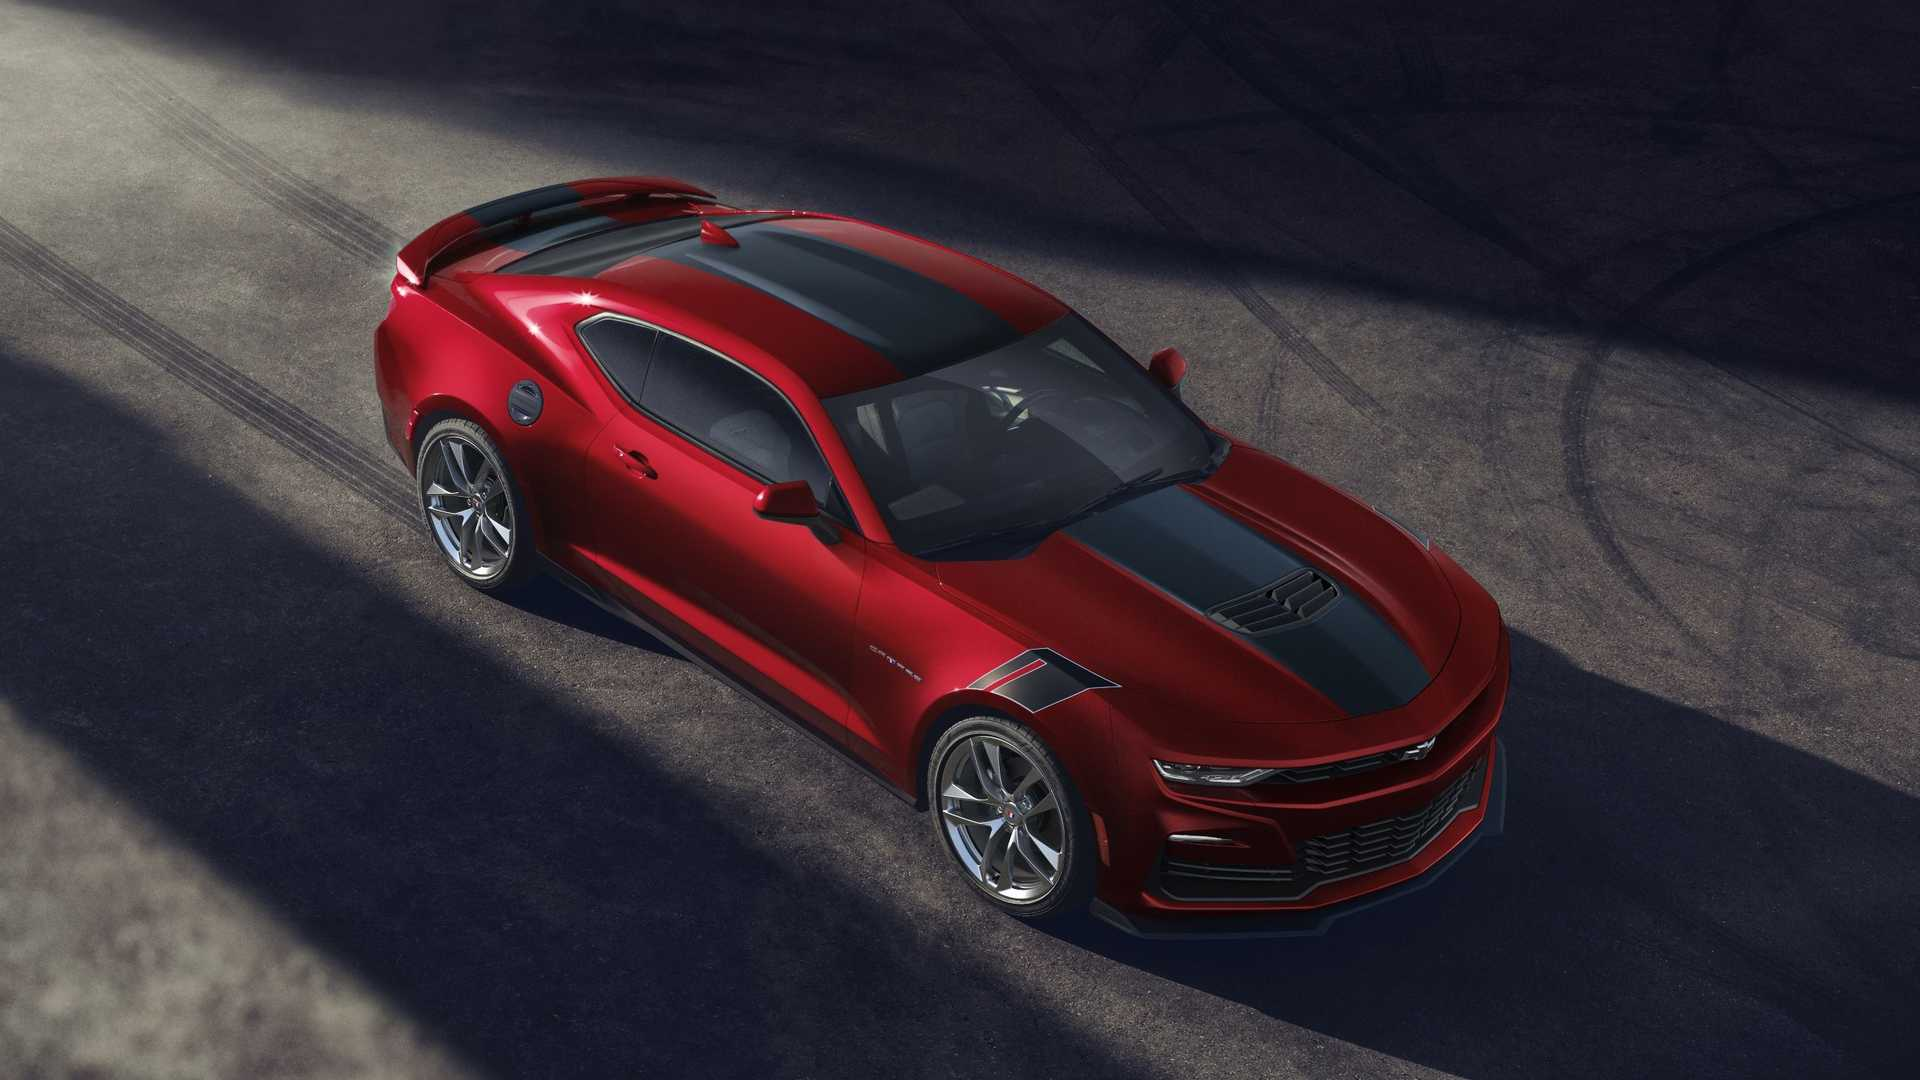 Automotive News has just reported that Chevrolet is considering phasing out the iconic Camaro coupe and putting an all-electric four-door model in its place in four years' time.